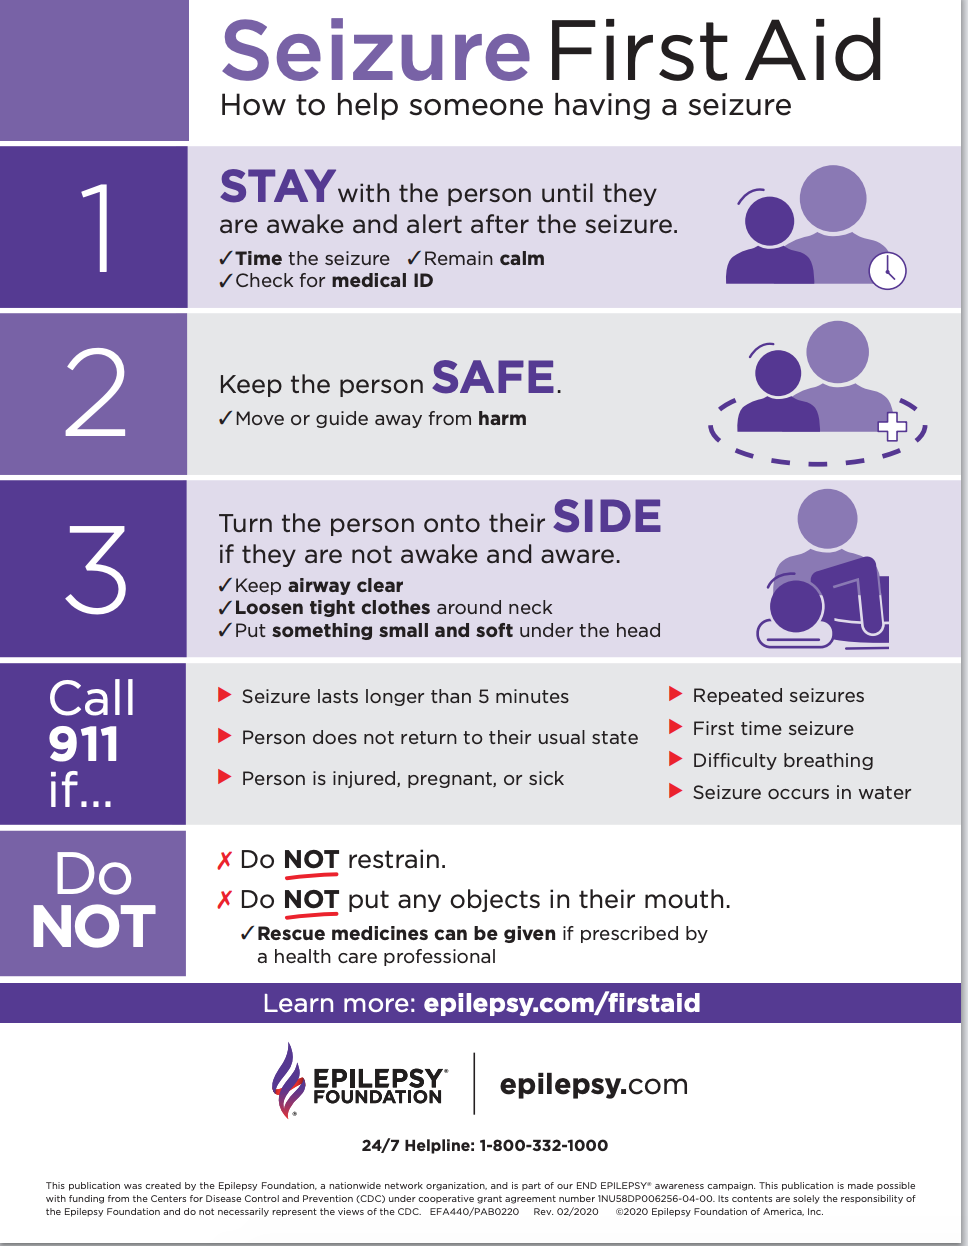 Seizure First Aid: Stay with the person until they regain consciousness. Keep them safe. Call 911.